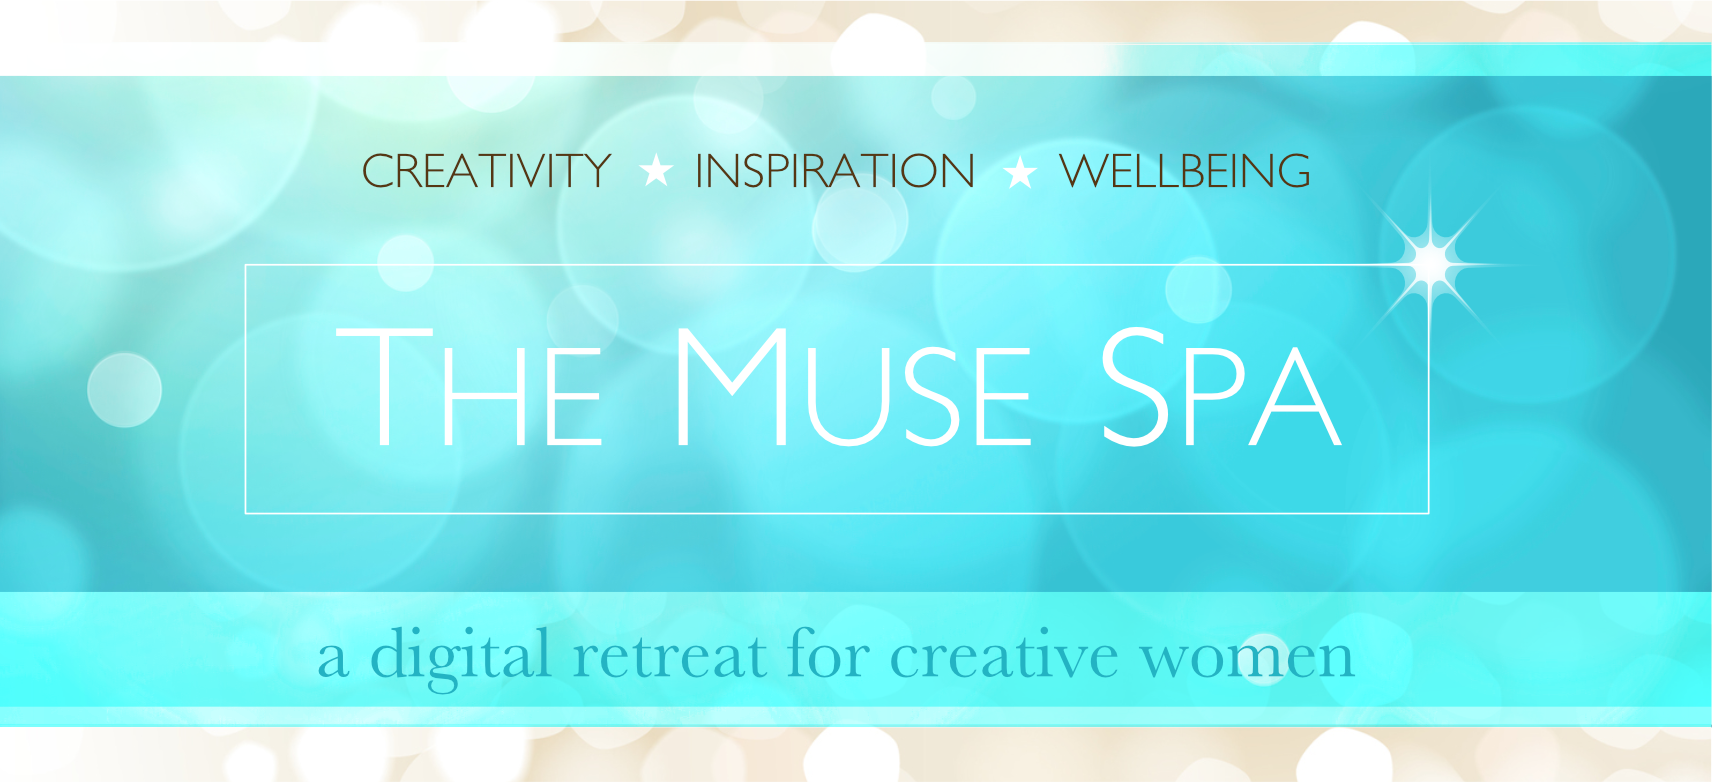 the muse spa digital retreat for creative women banner image